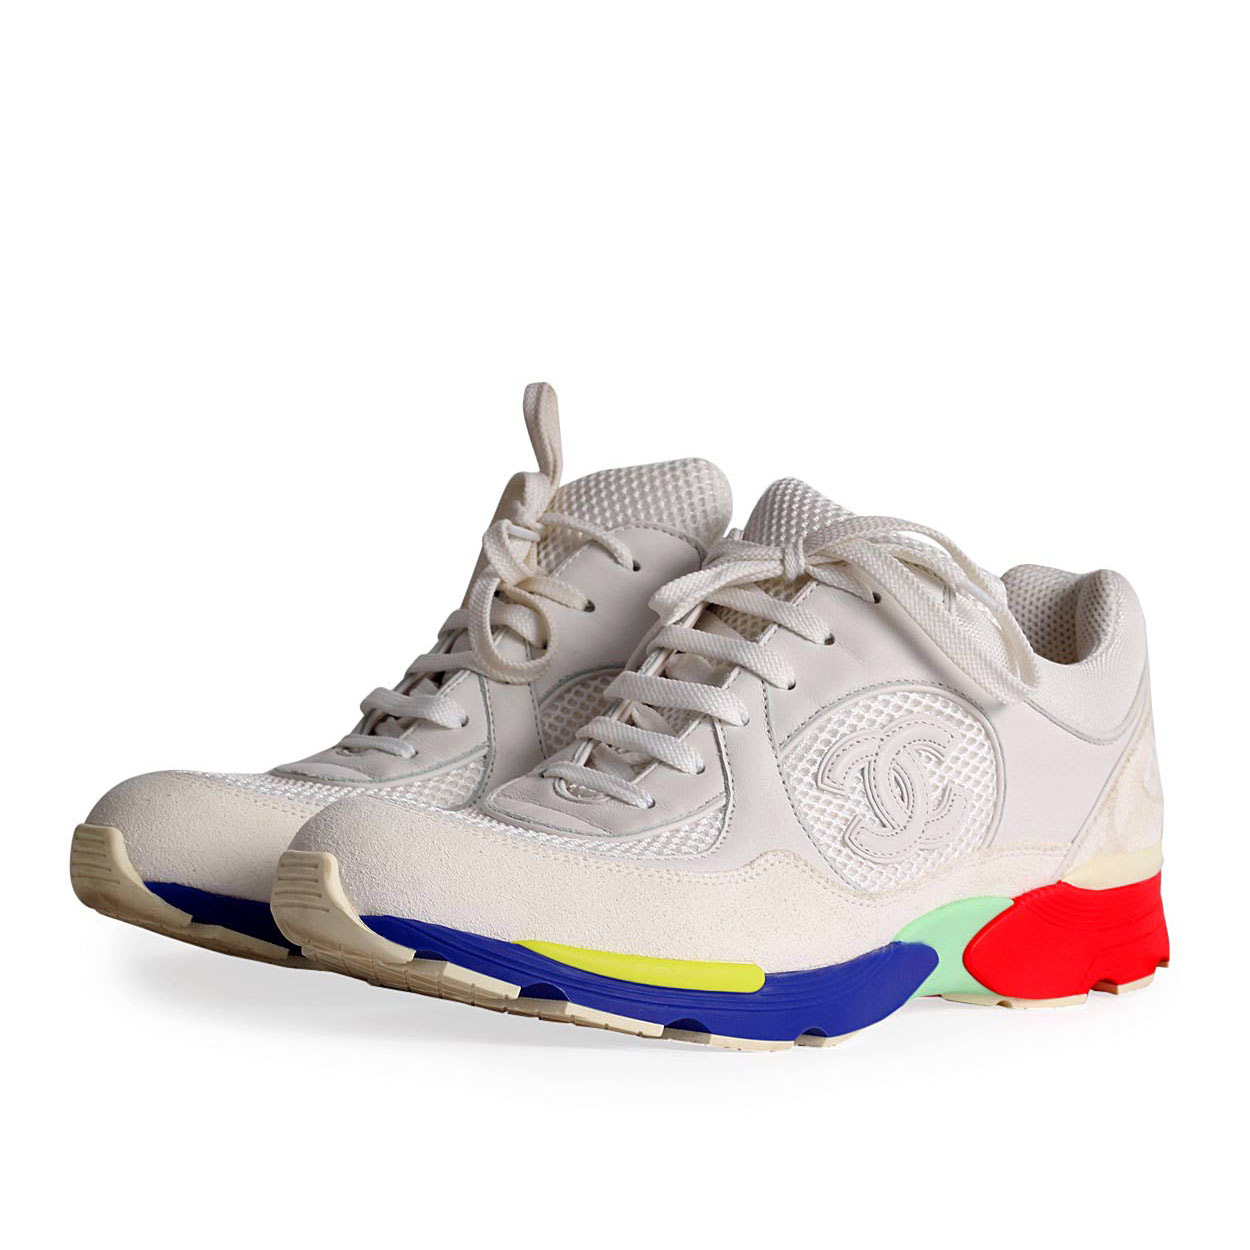 CHANEL Fabric Sneakers with Multicolor Sole